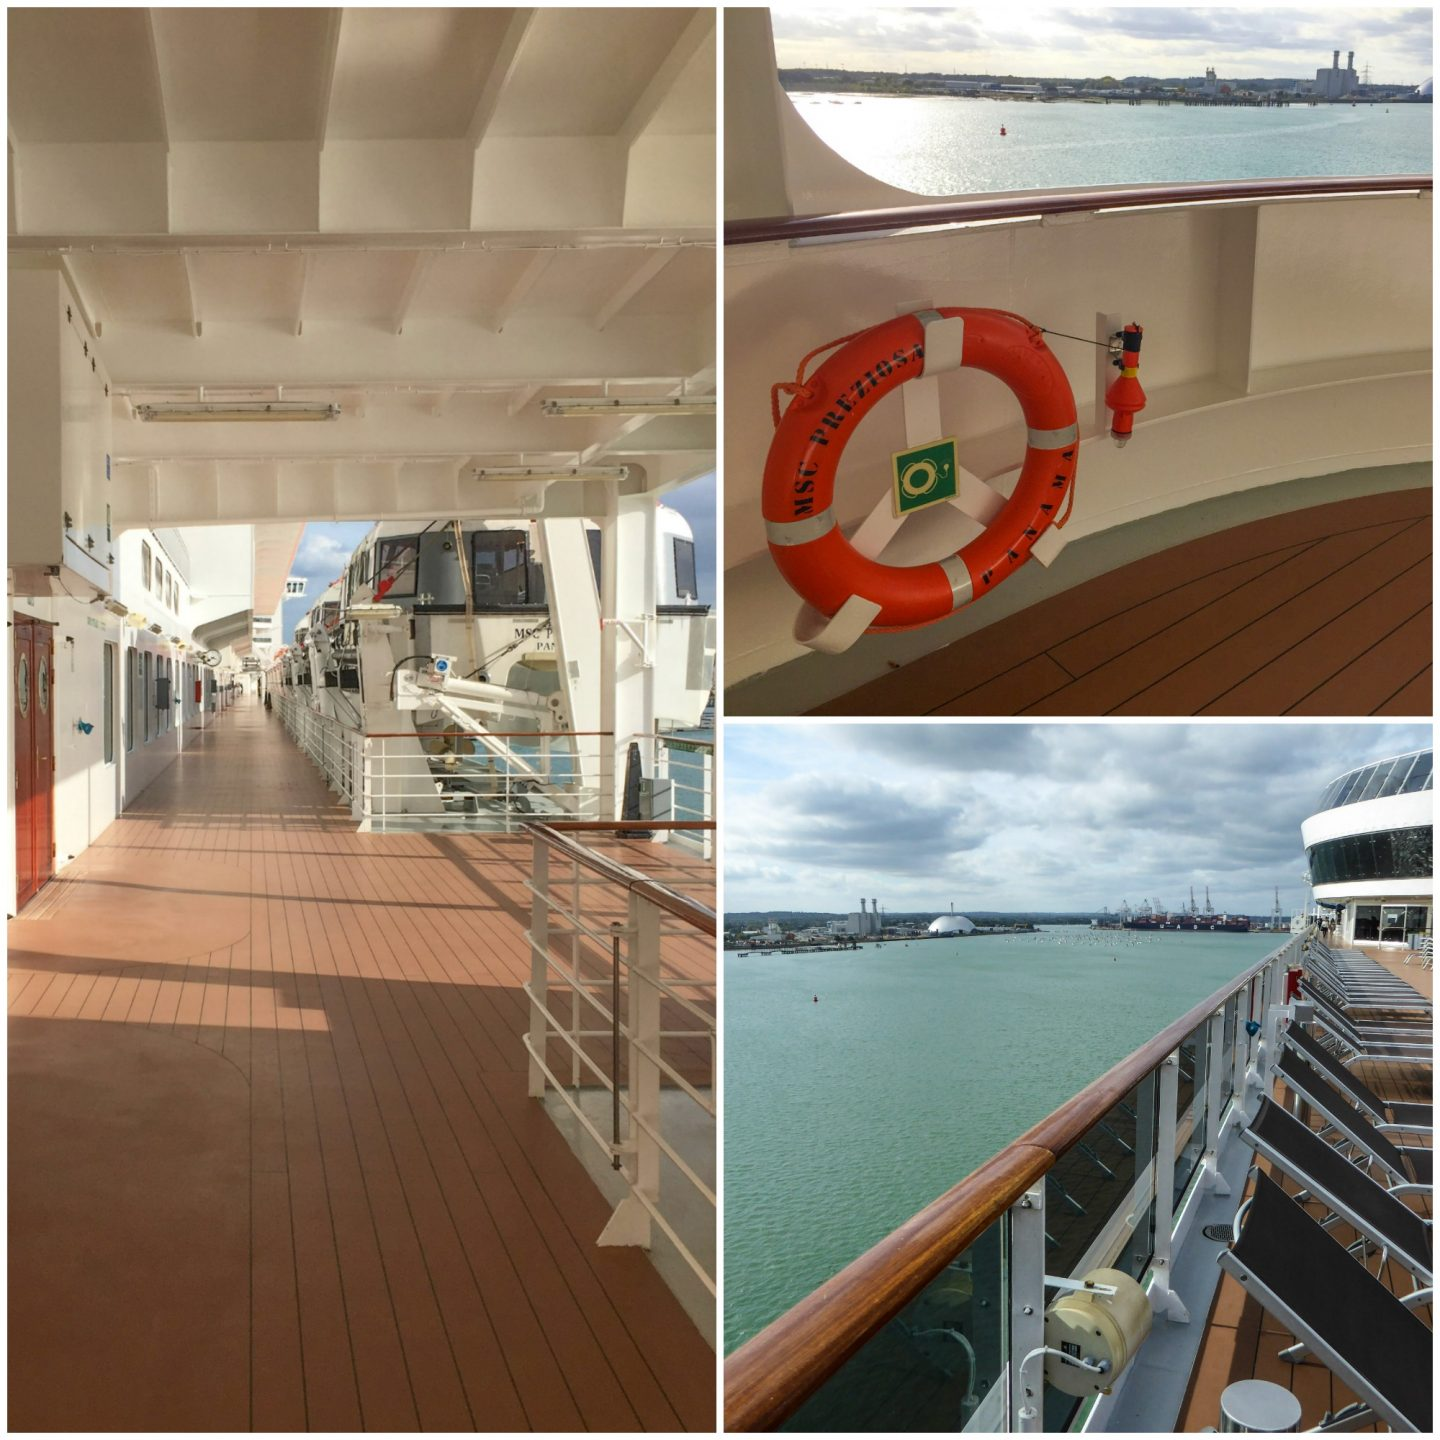 Walking around the decks - MSC Preziosa